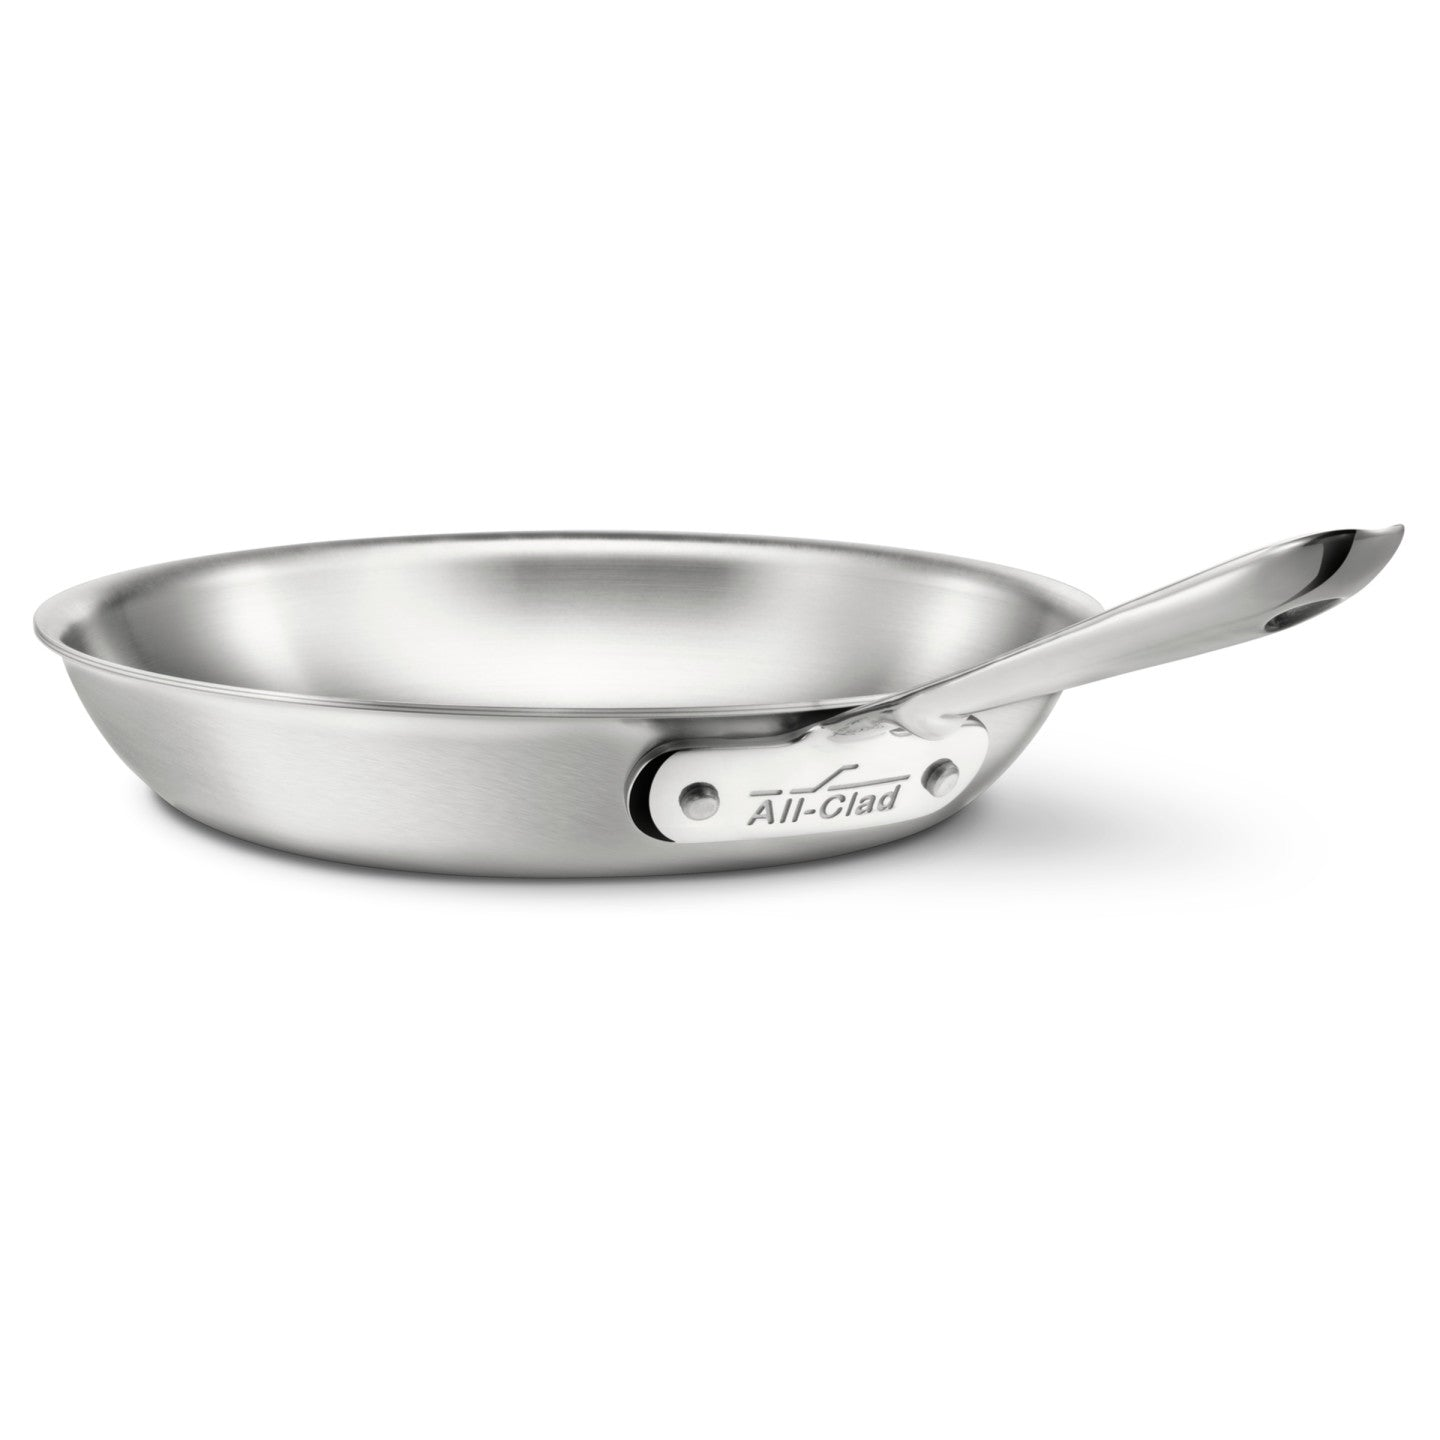 All-Clad d5 Frying Pan